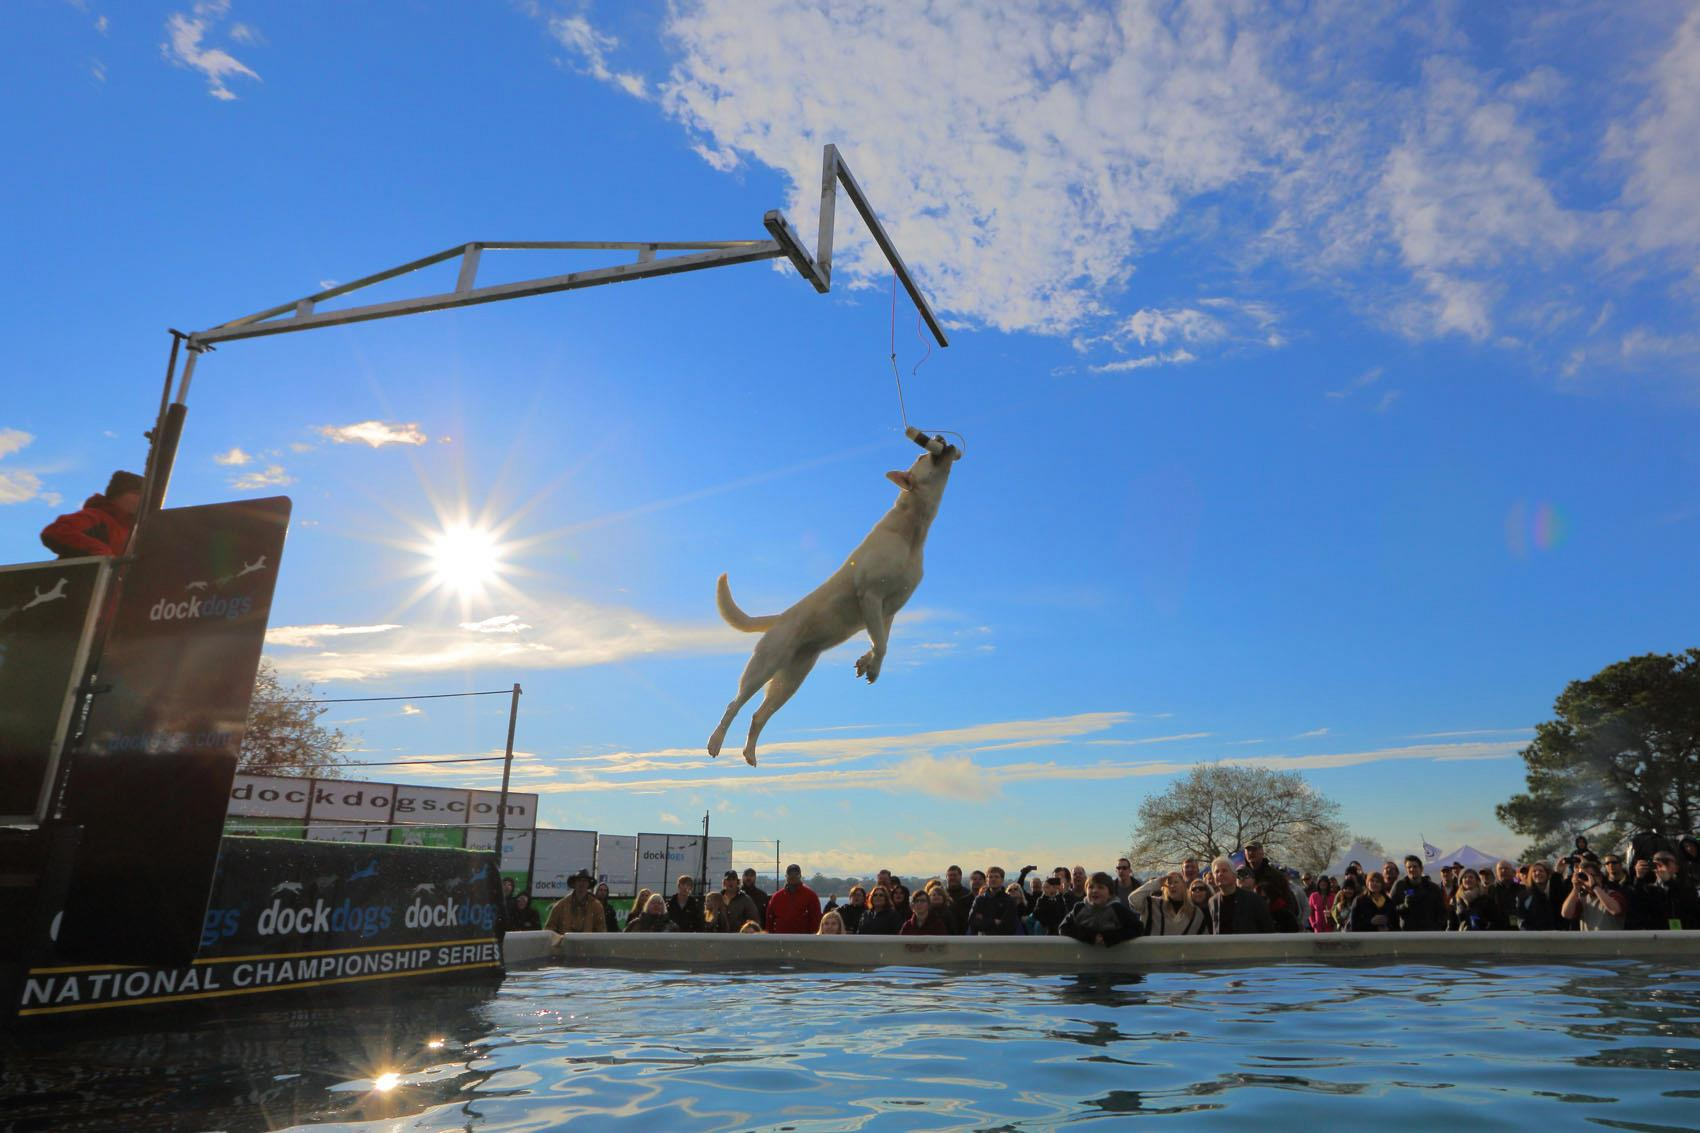 DockDogs Extreme Vertivcal